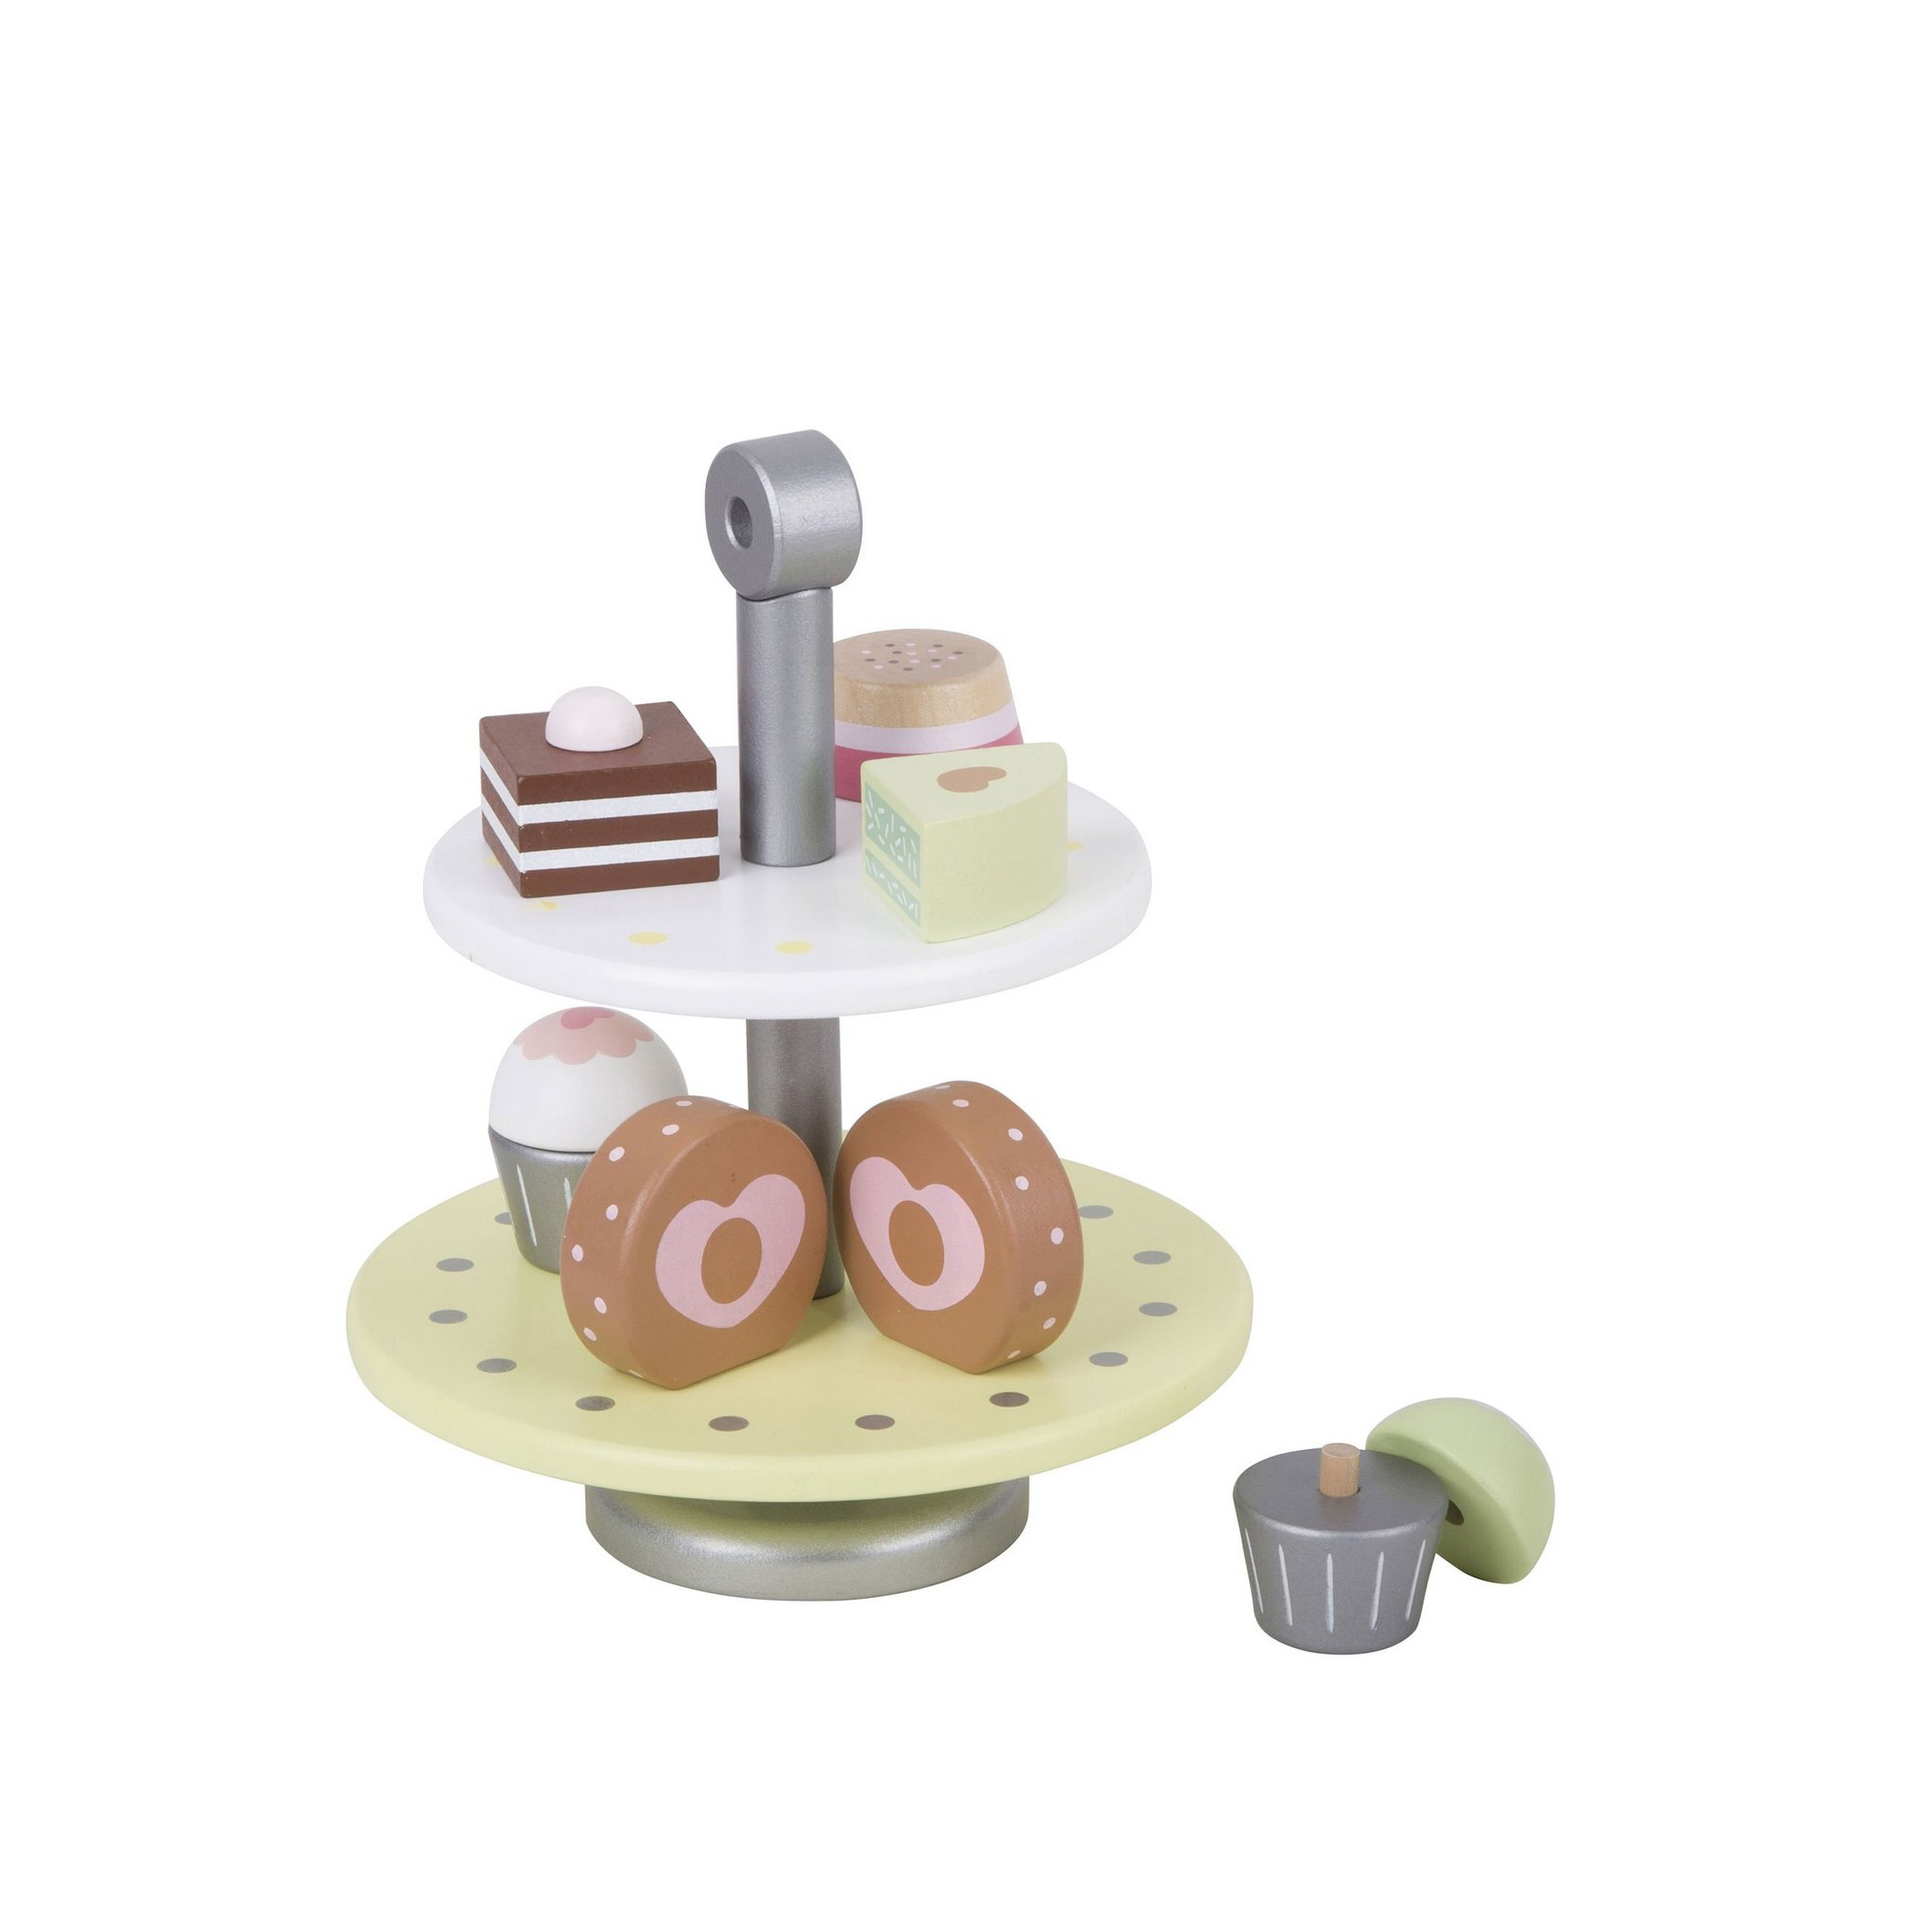 Image of Classic World Cupcake Stand